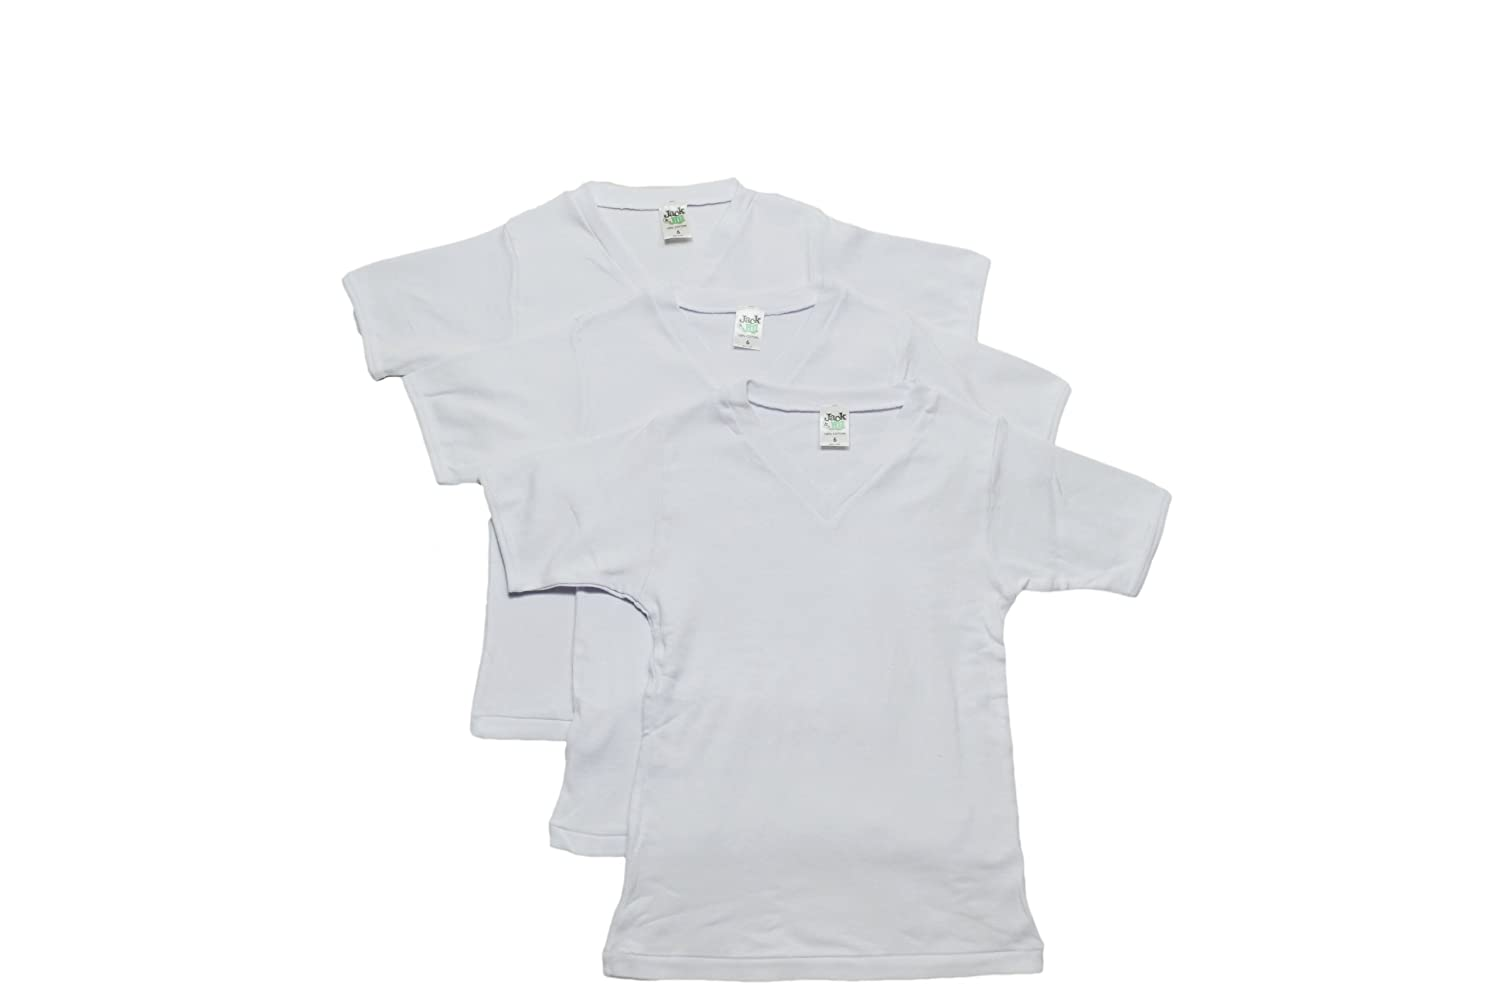 Boys 3 Pack V-neck T-shirt Jack /& Jill Underwear 18